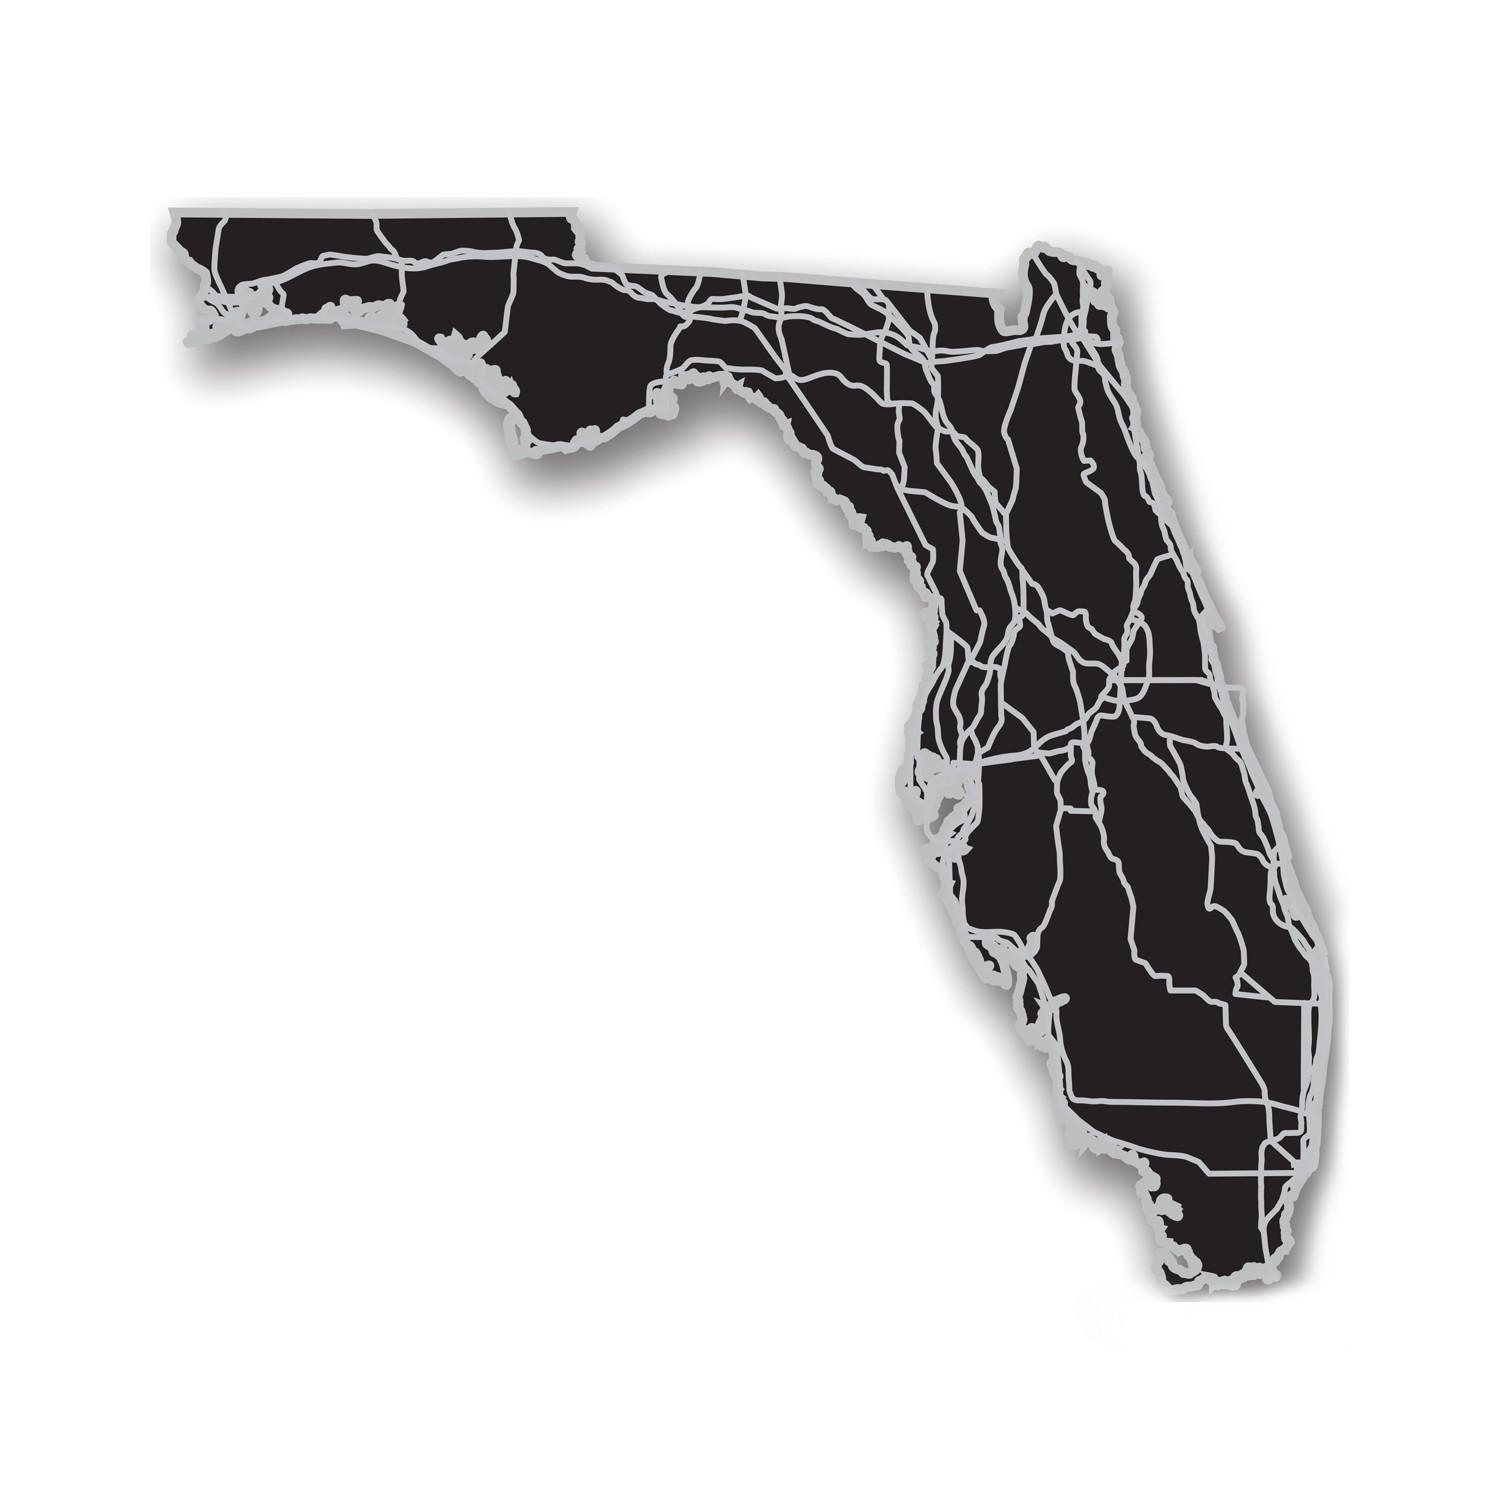 Florida Map Of State.Florida Acrylic Cutout State Map Modern Crowd Touch Of Modern